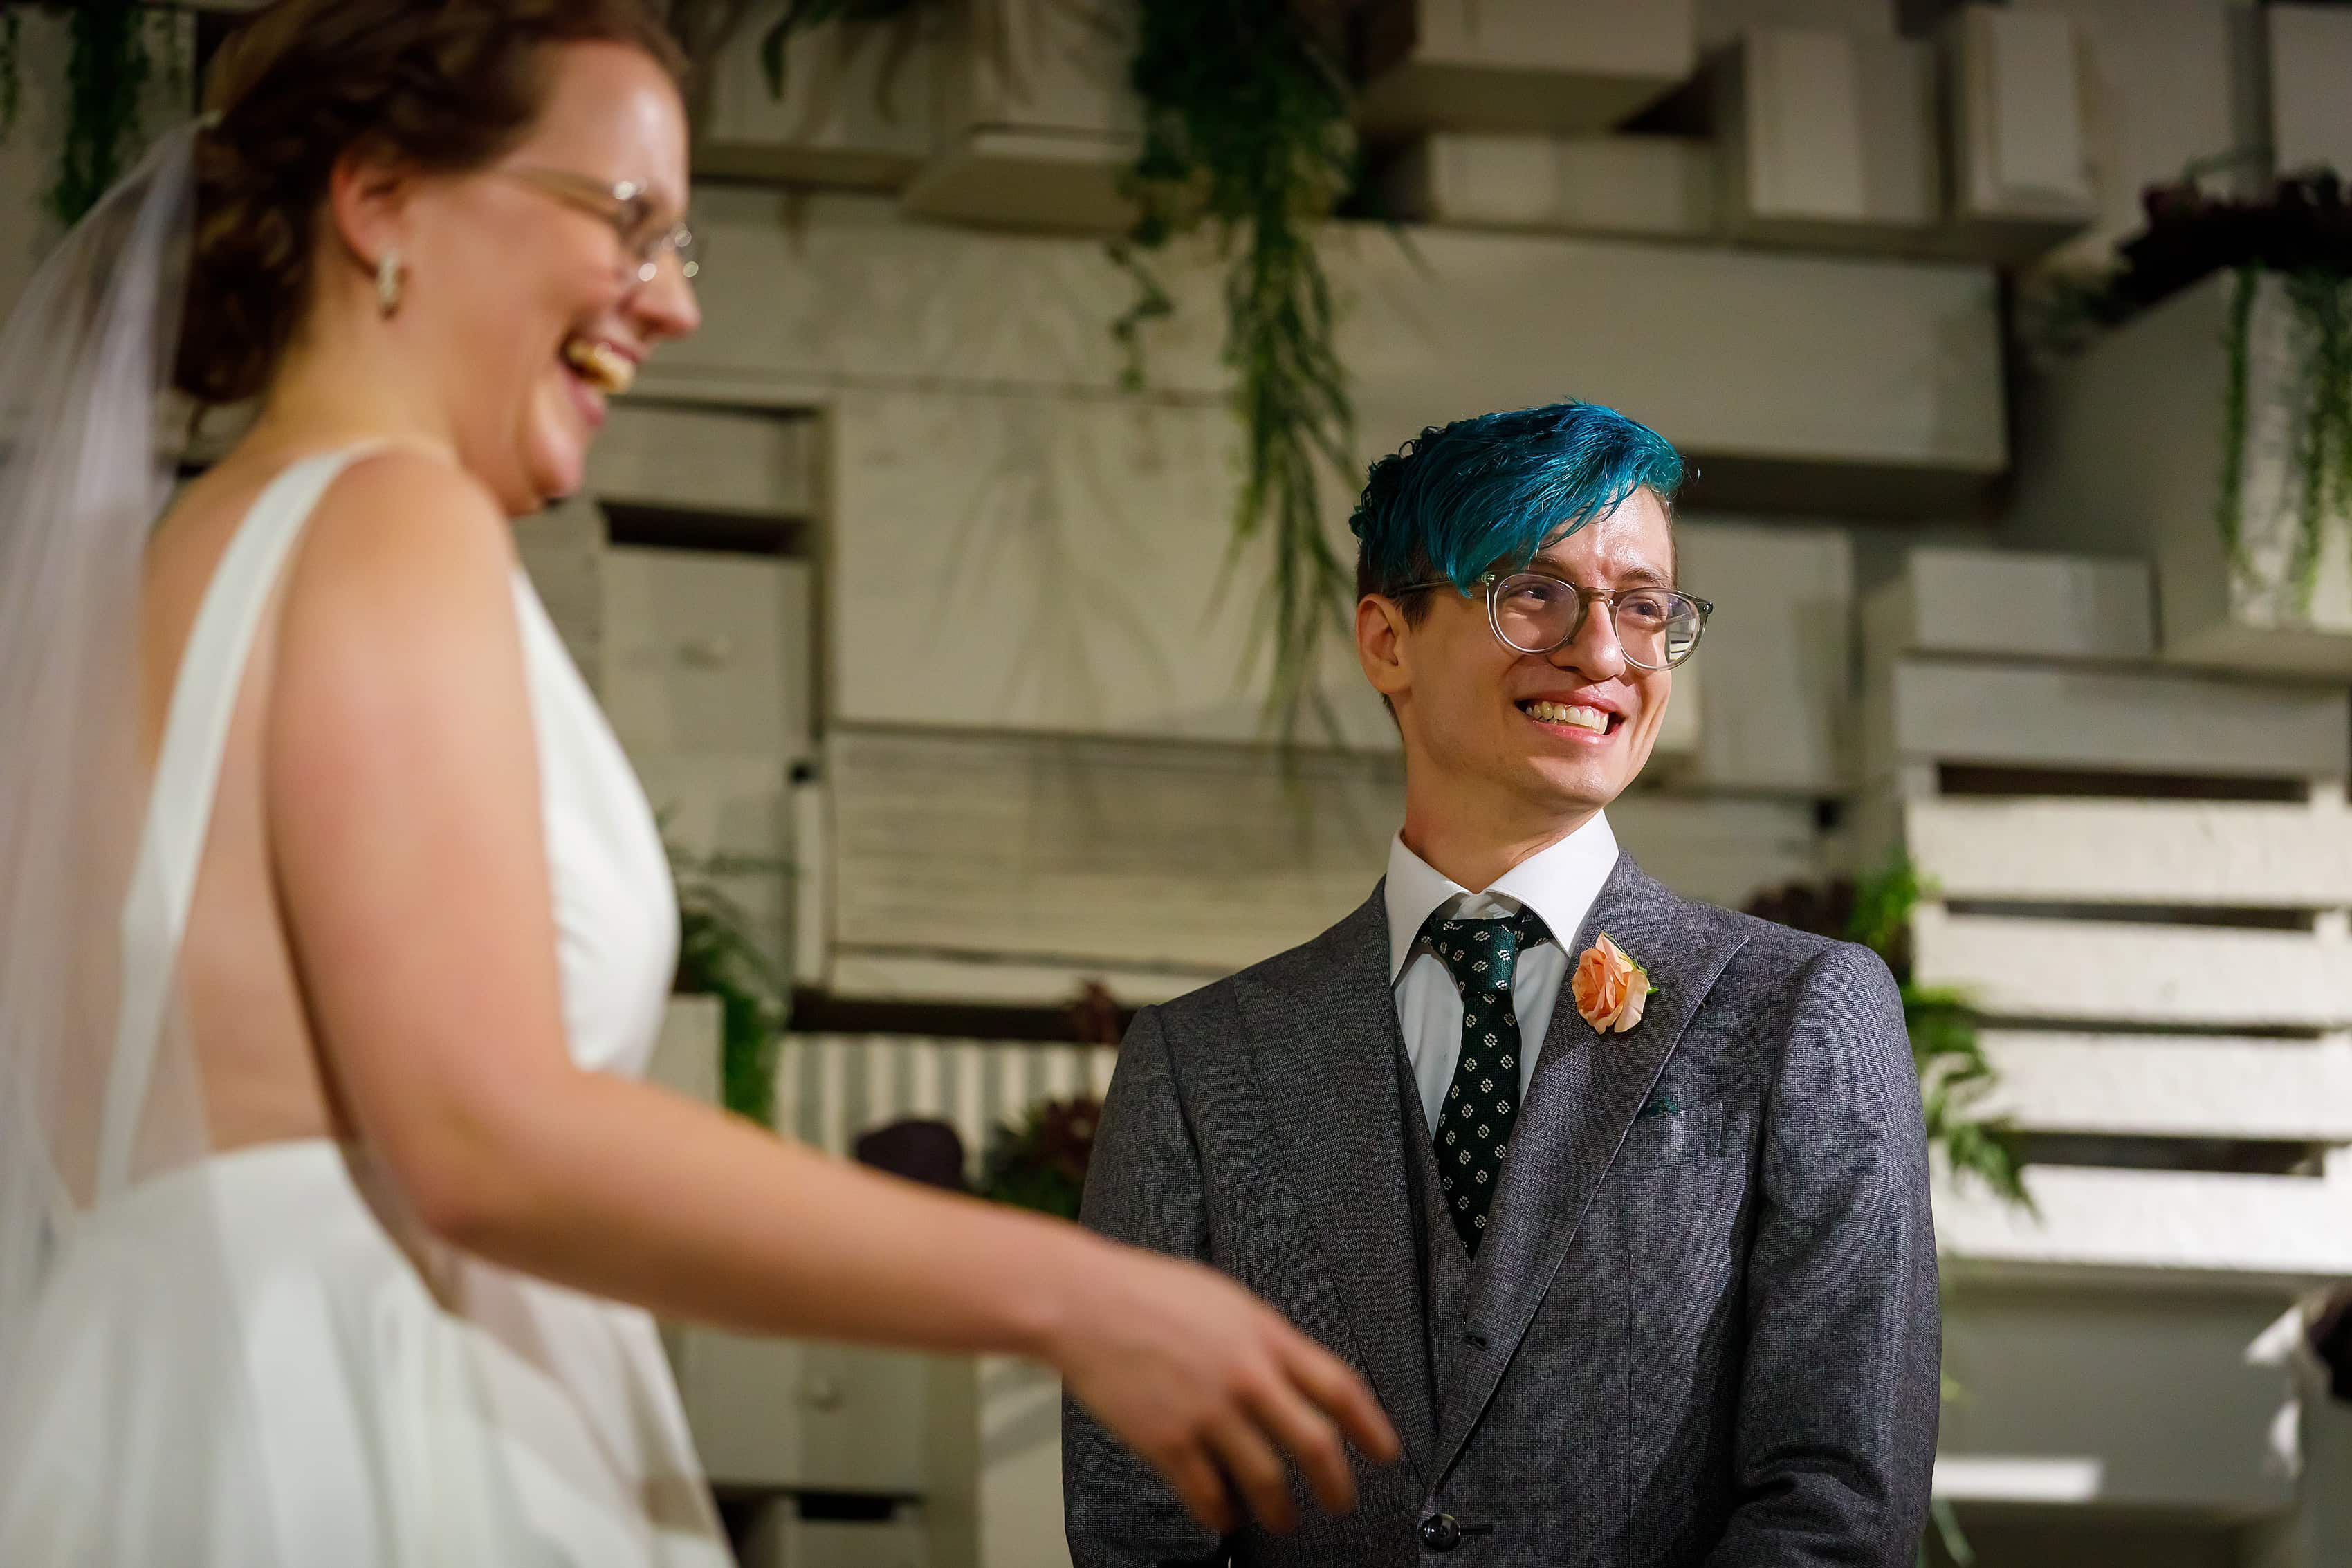 bride and groom laugh during wedding ceremony at Rust Belt Market in downtown Ferndale, Michigan